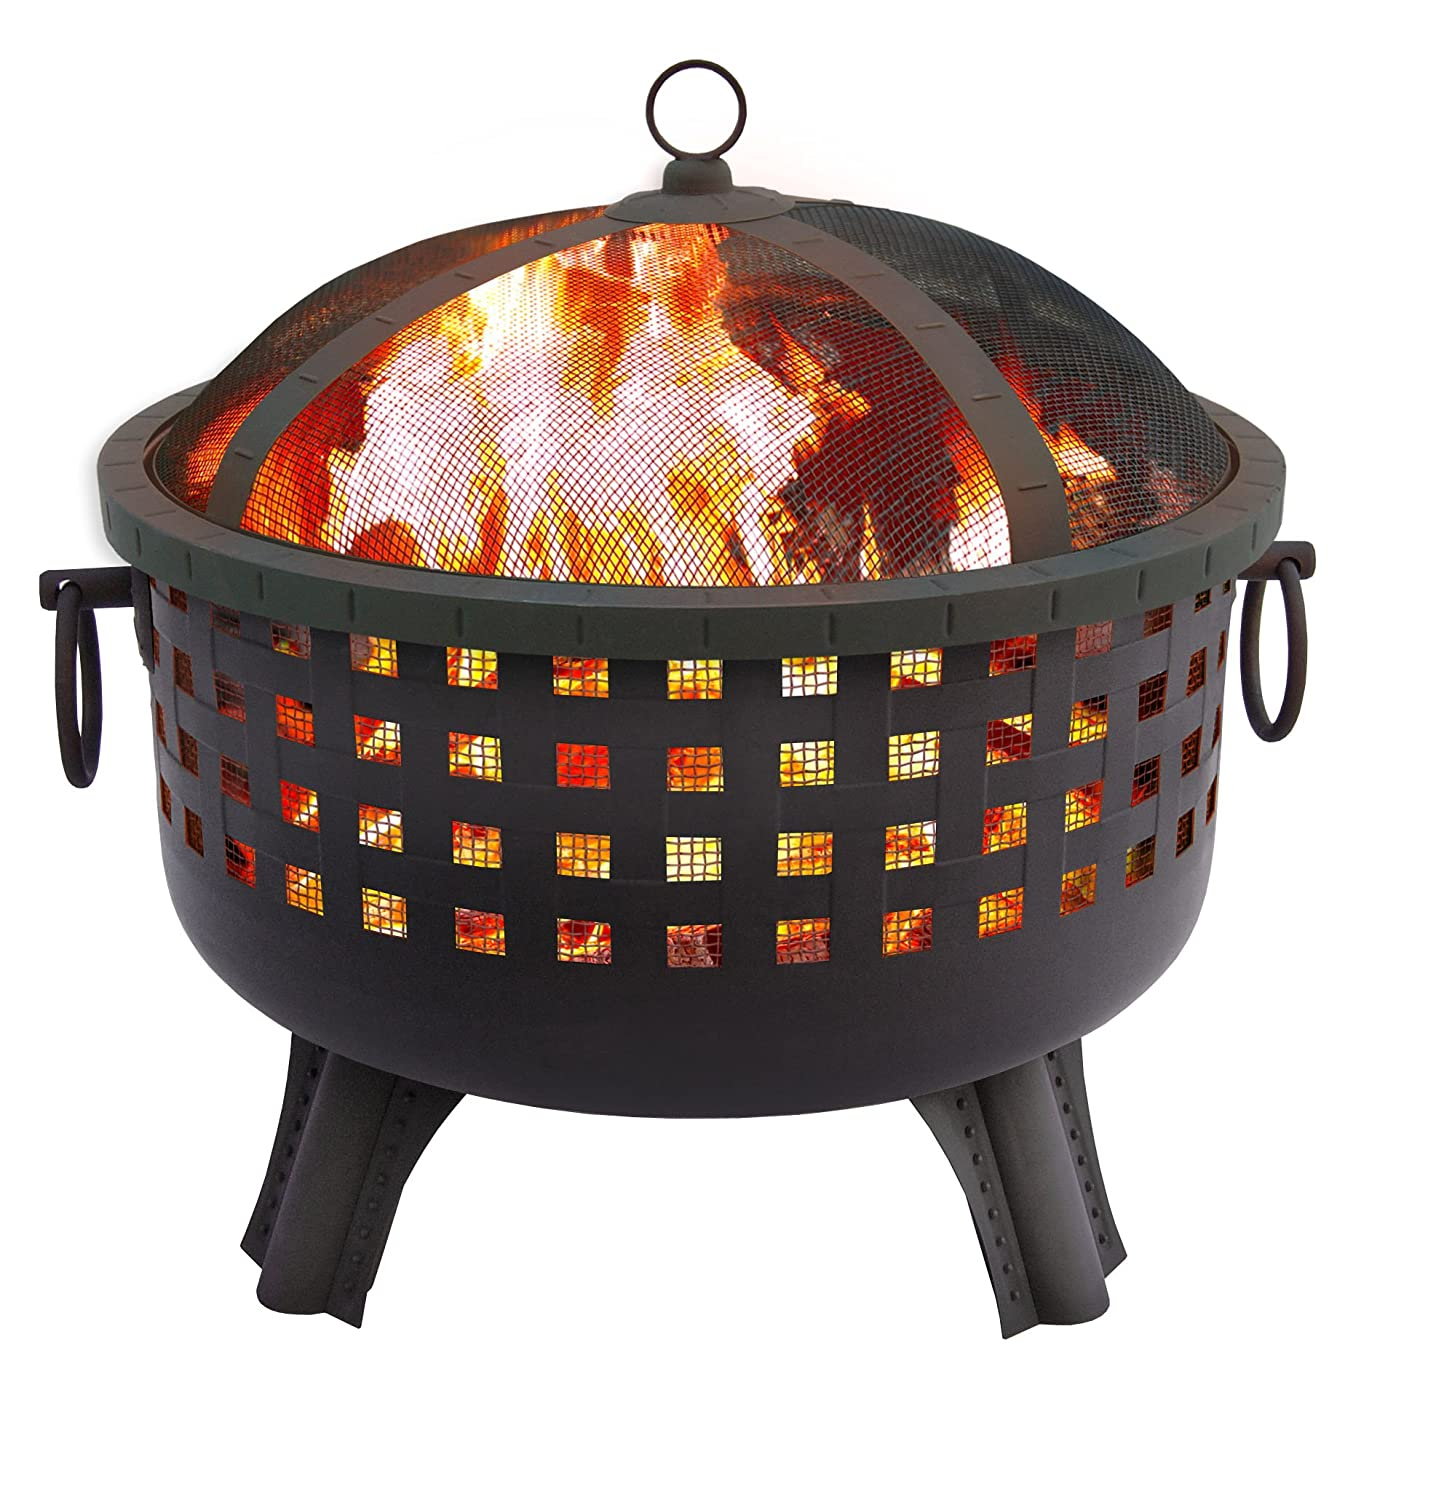 Landmann 26364 23-1/2-Inch Savannah Garden Light Fire Pit, Black Landmann USA